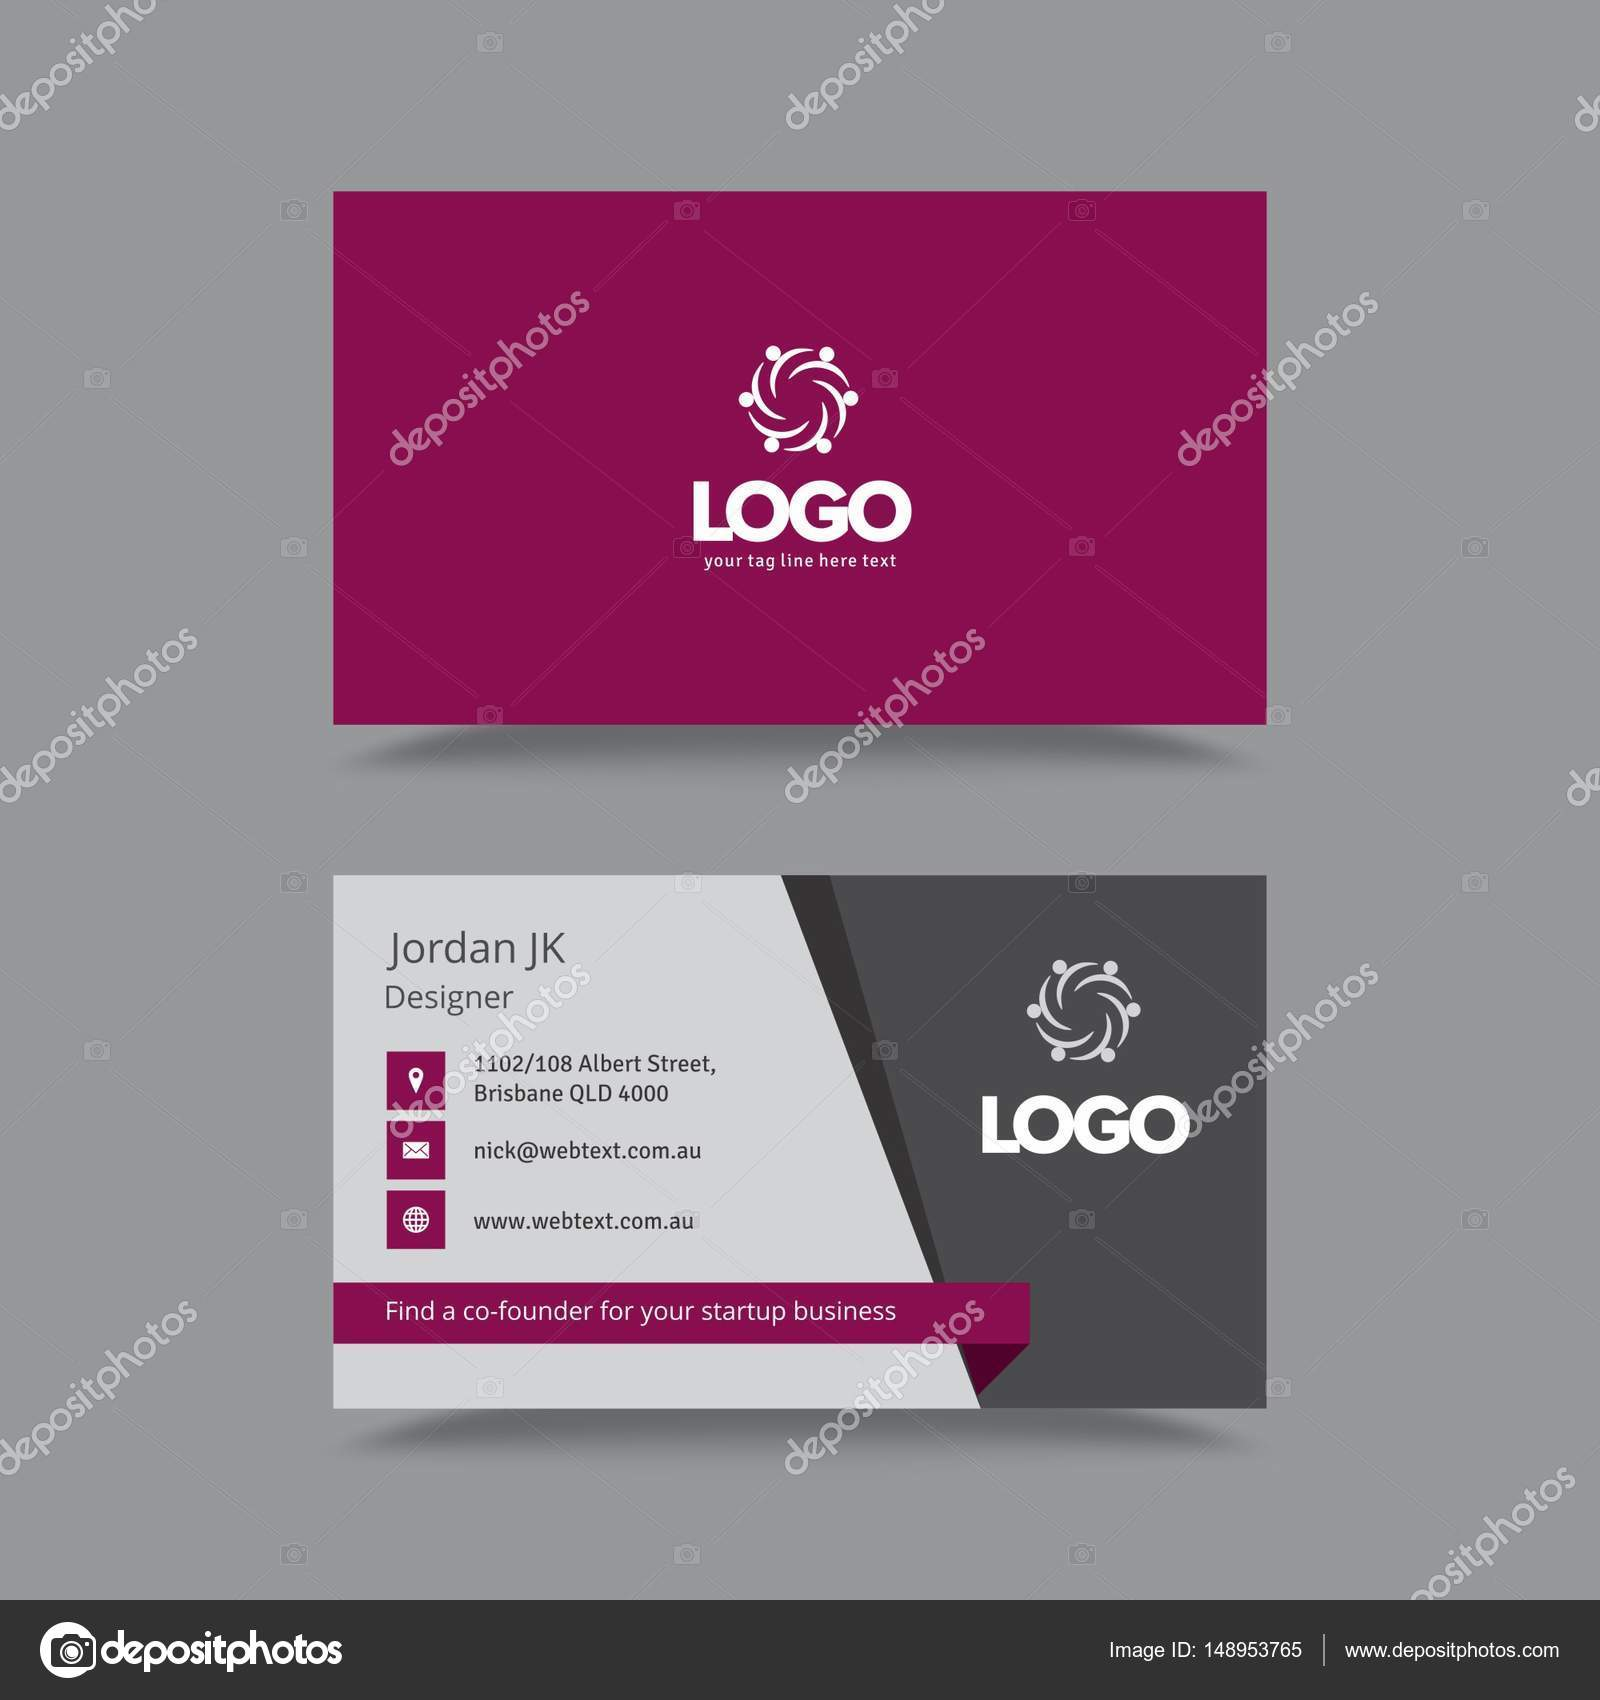 Professional Business Card Design — Stock Vector ...